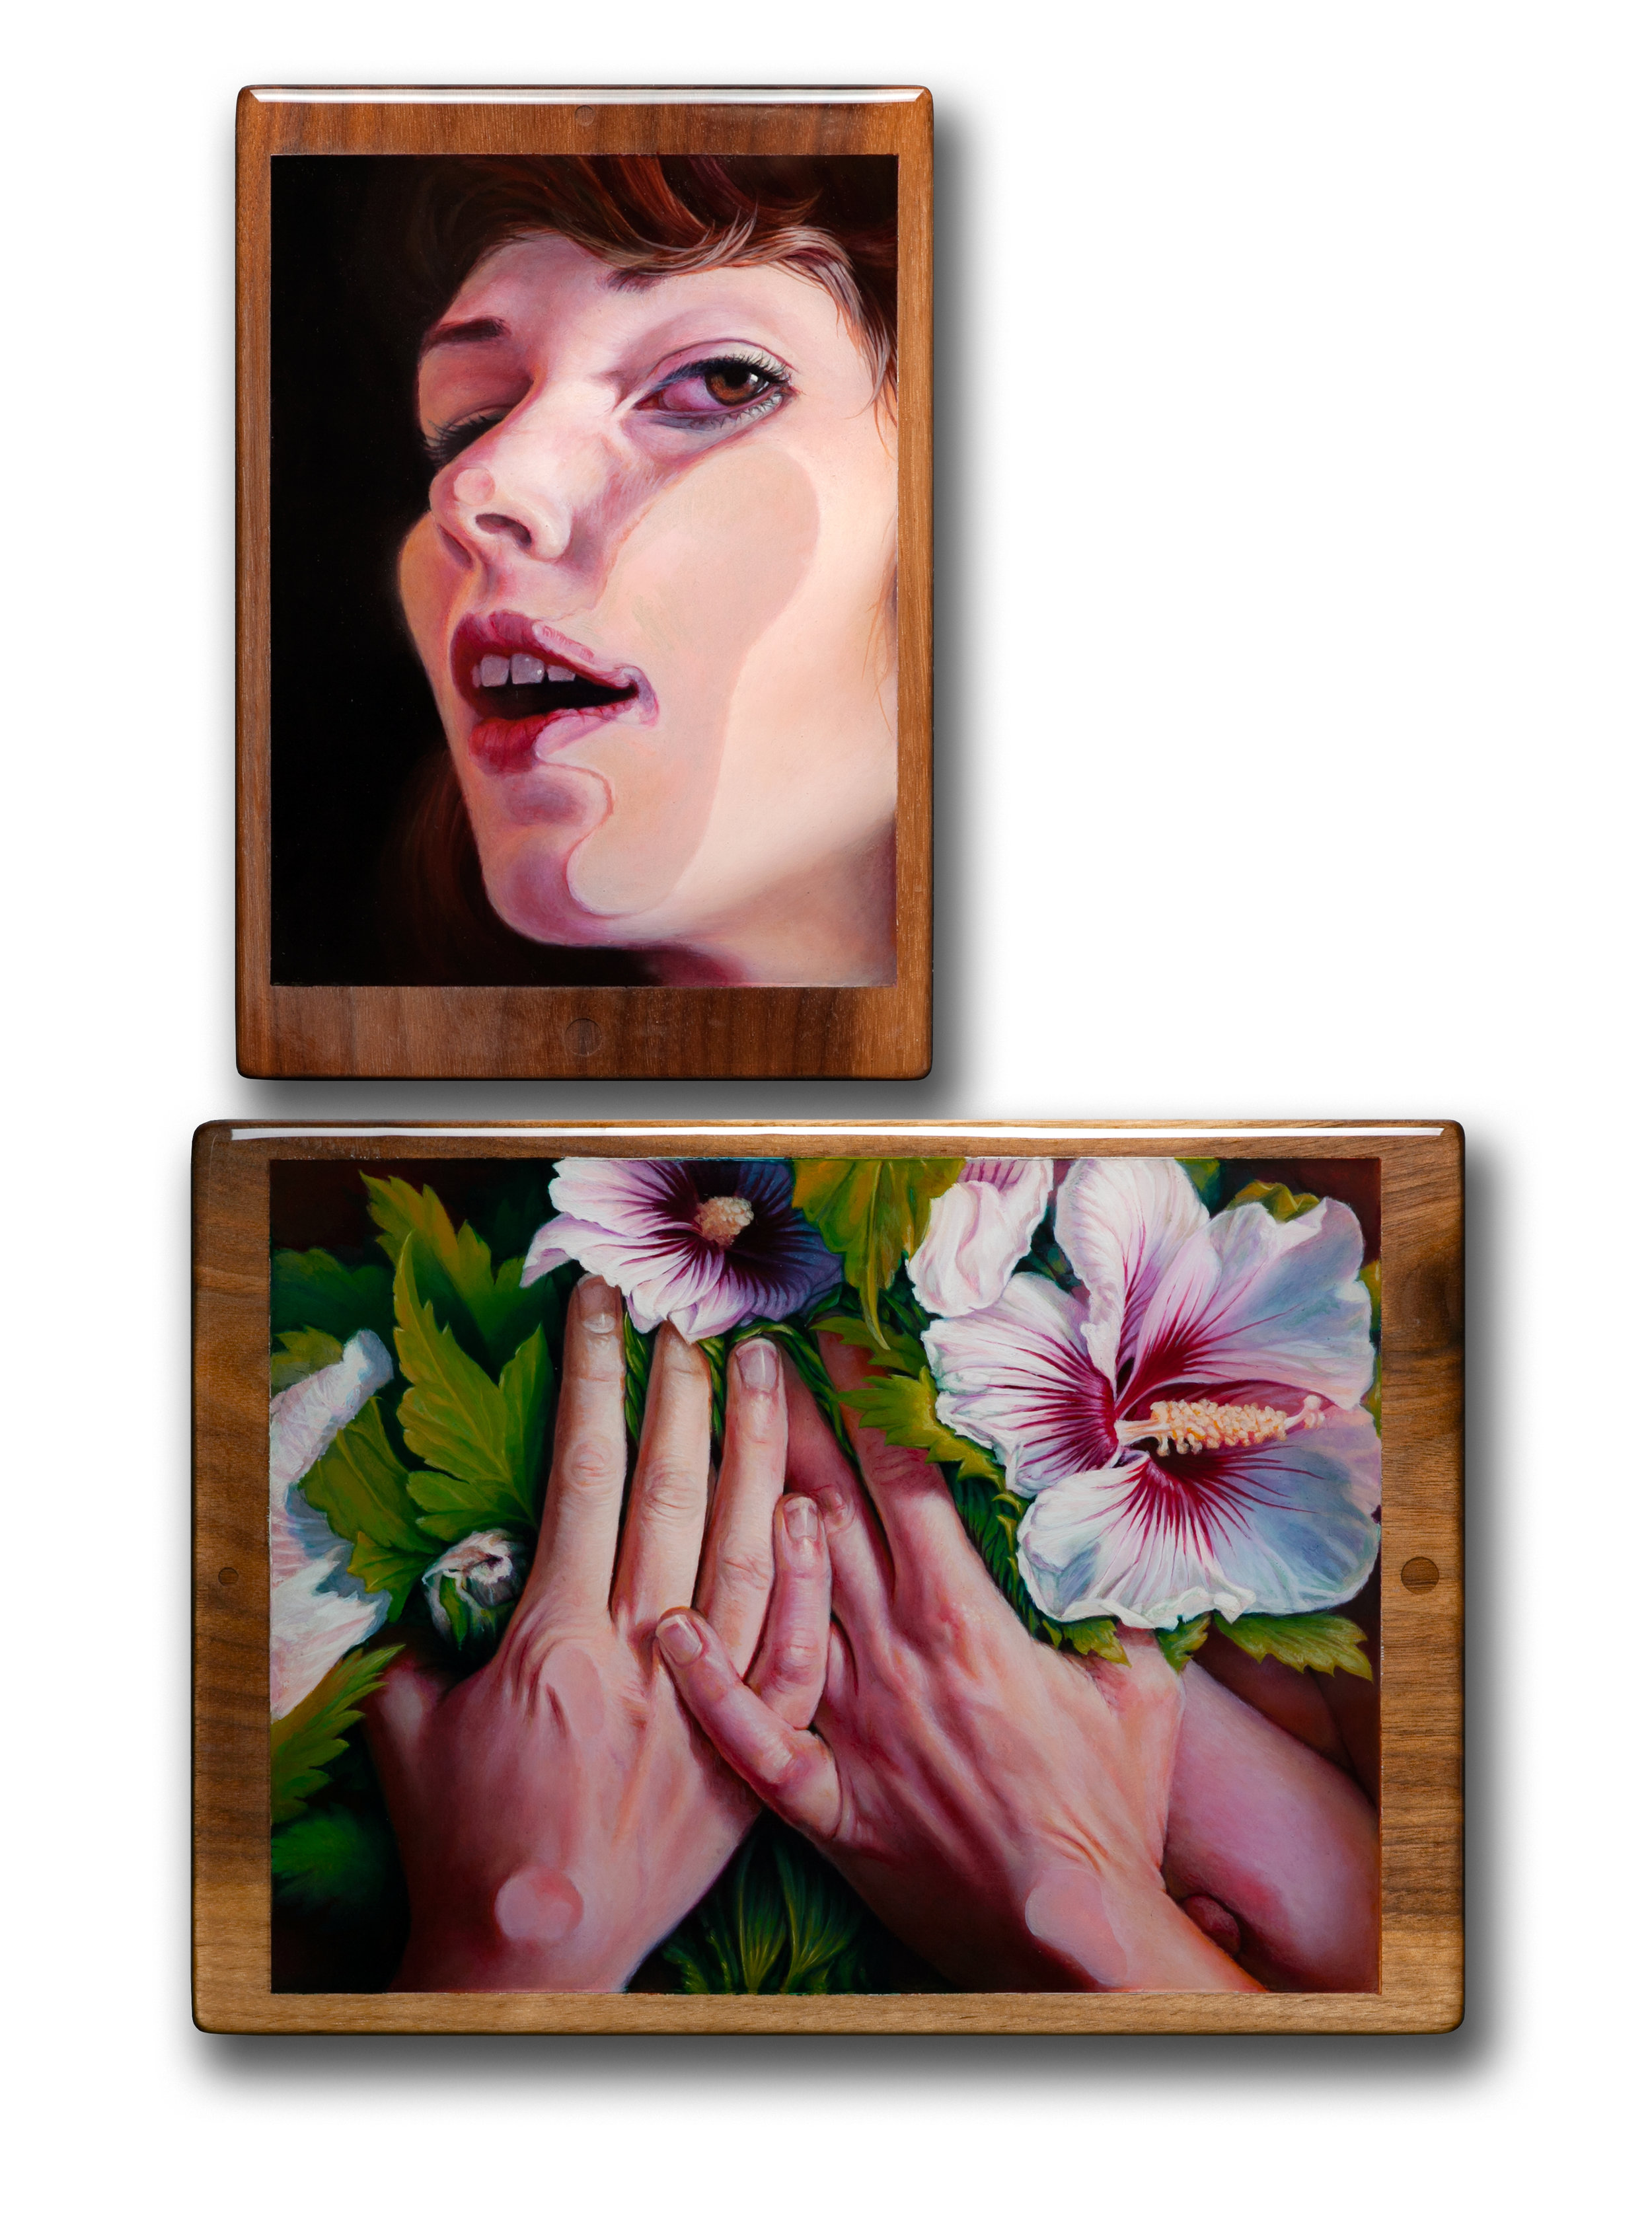 iPressed, oil on western walnut hardwood iPad replicas, 6.5x9 and 8.5x12 inches, 2016. Private collection.